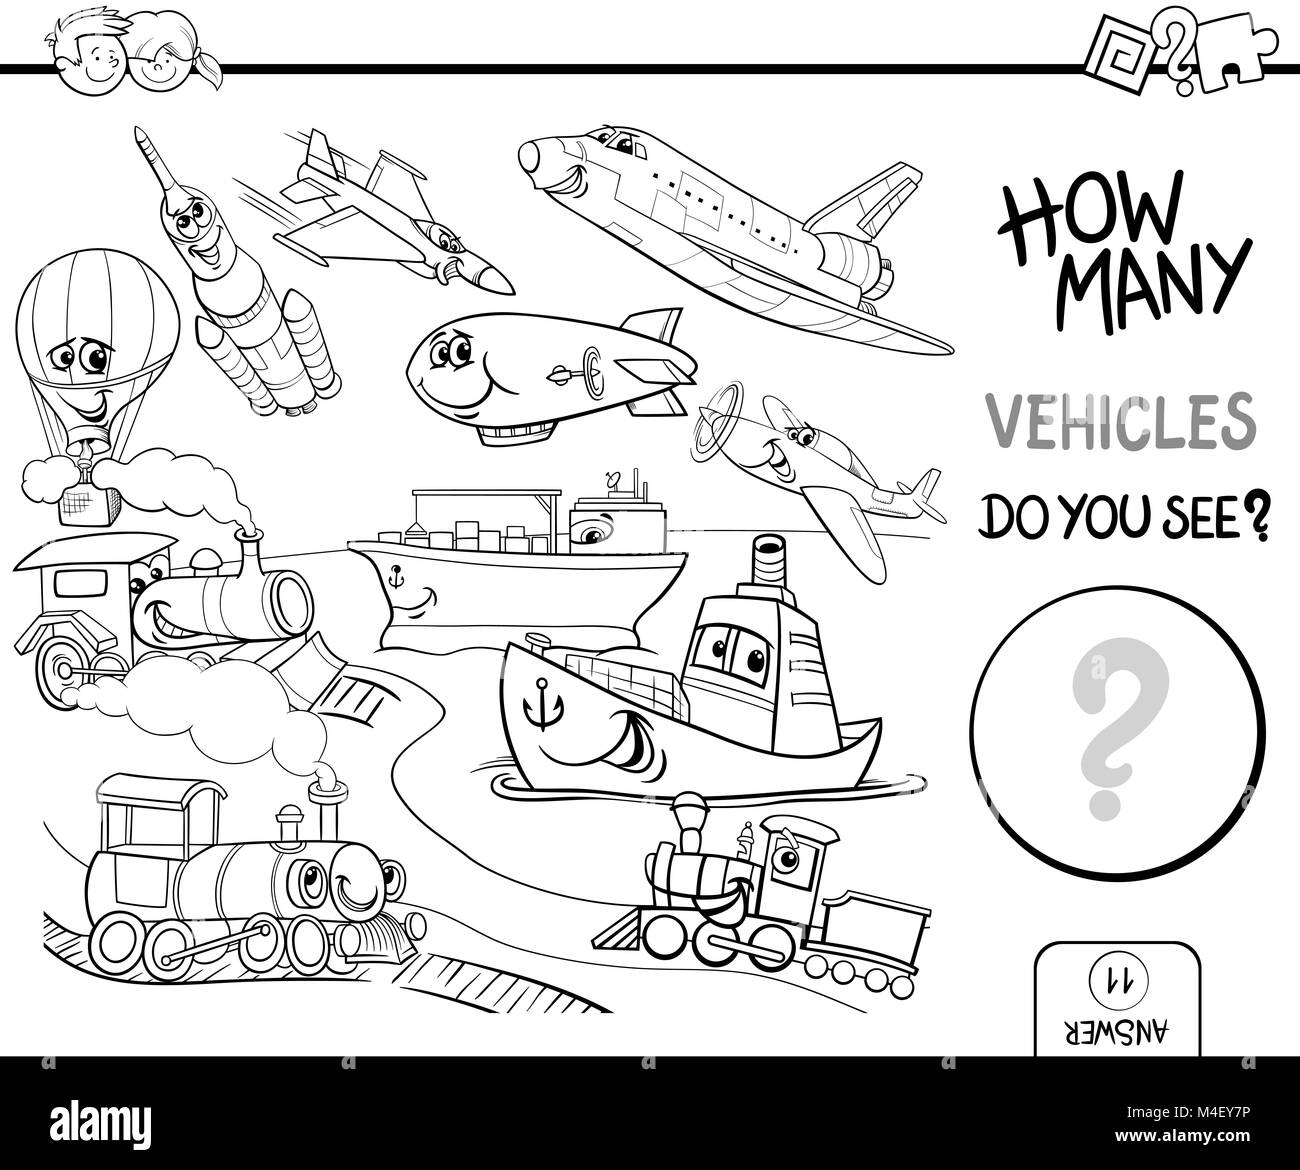 Counting Vehicles Coloring Book Stock Photo